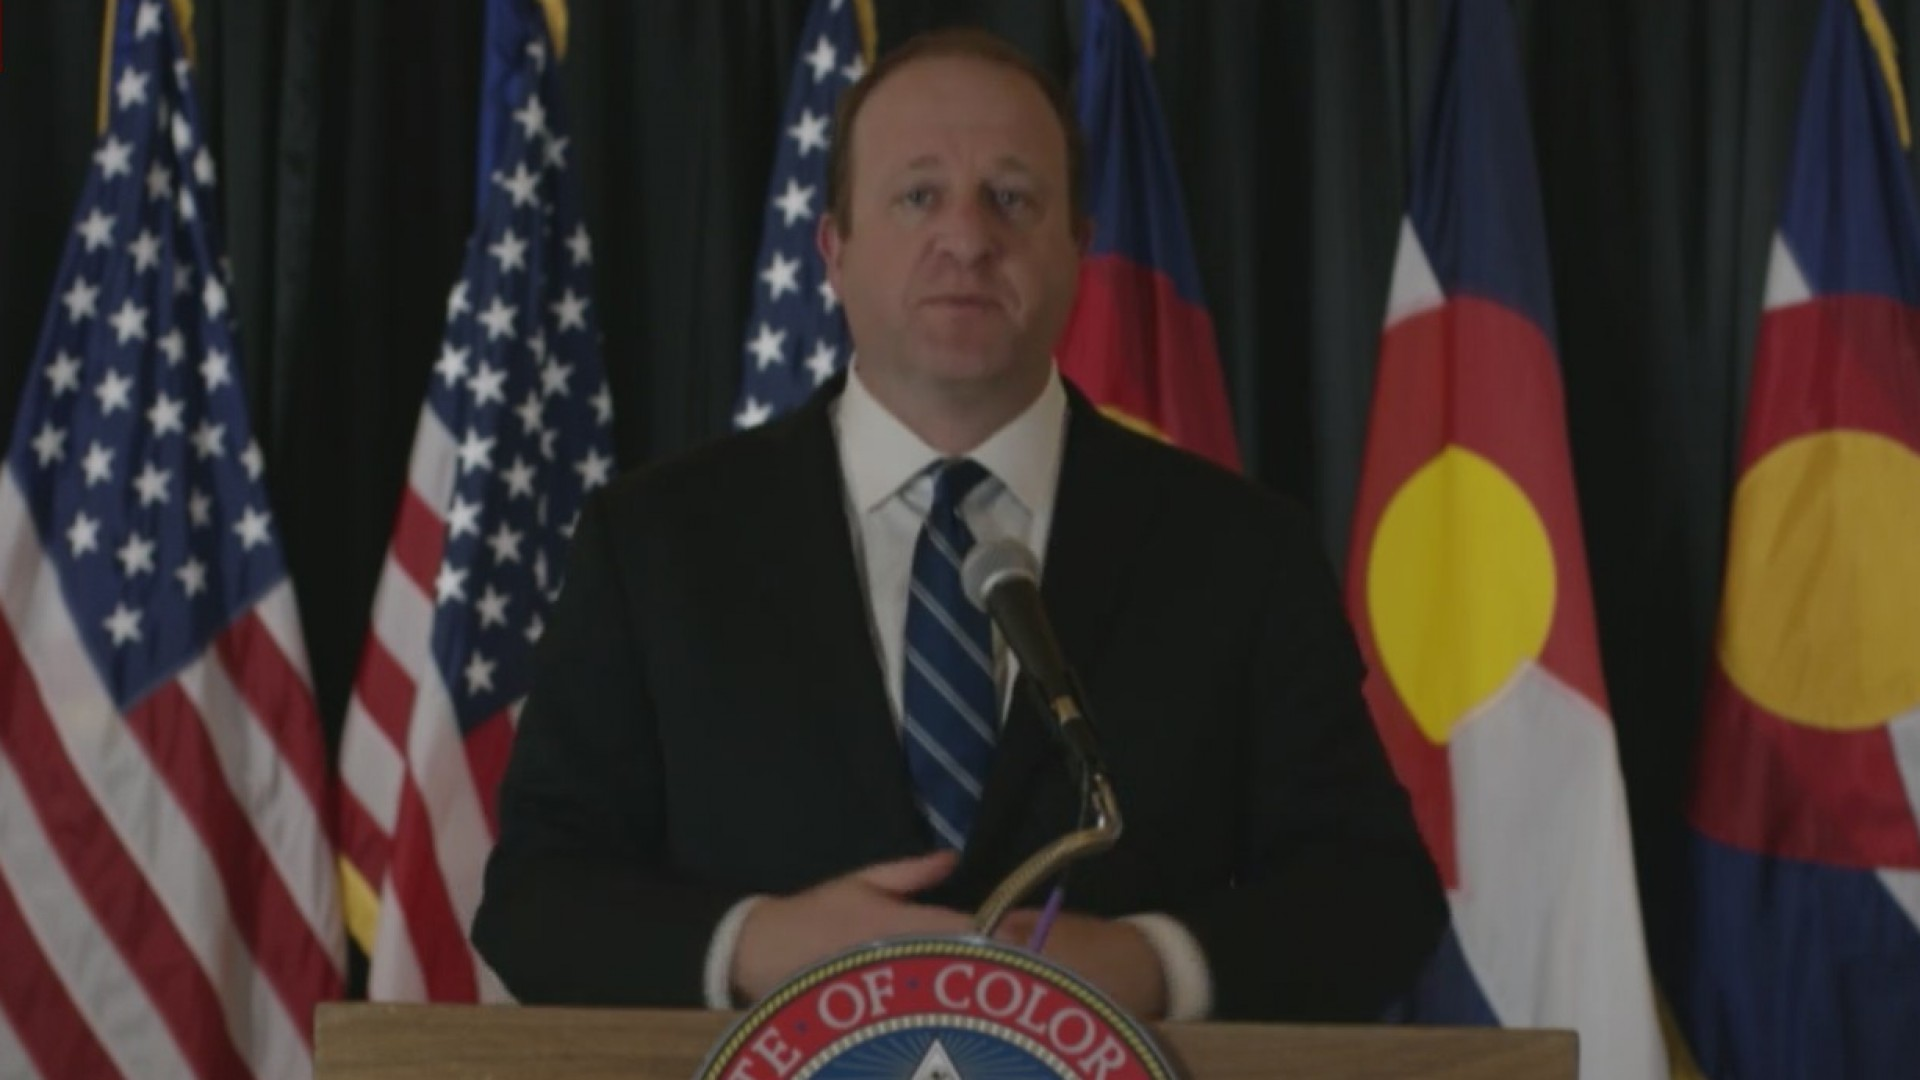 Gov. Jared Polis holds a news conference on COVID-19 in Colorado, on April 27, 2020.